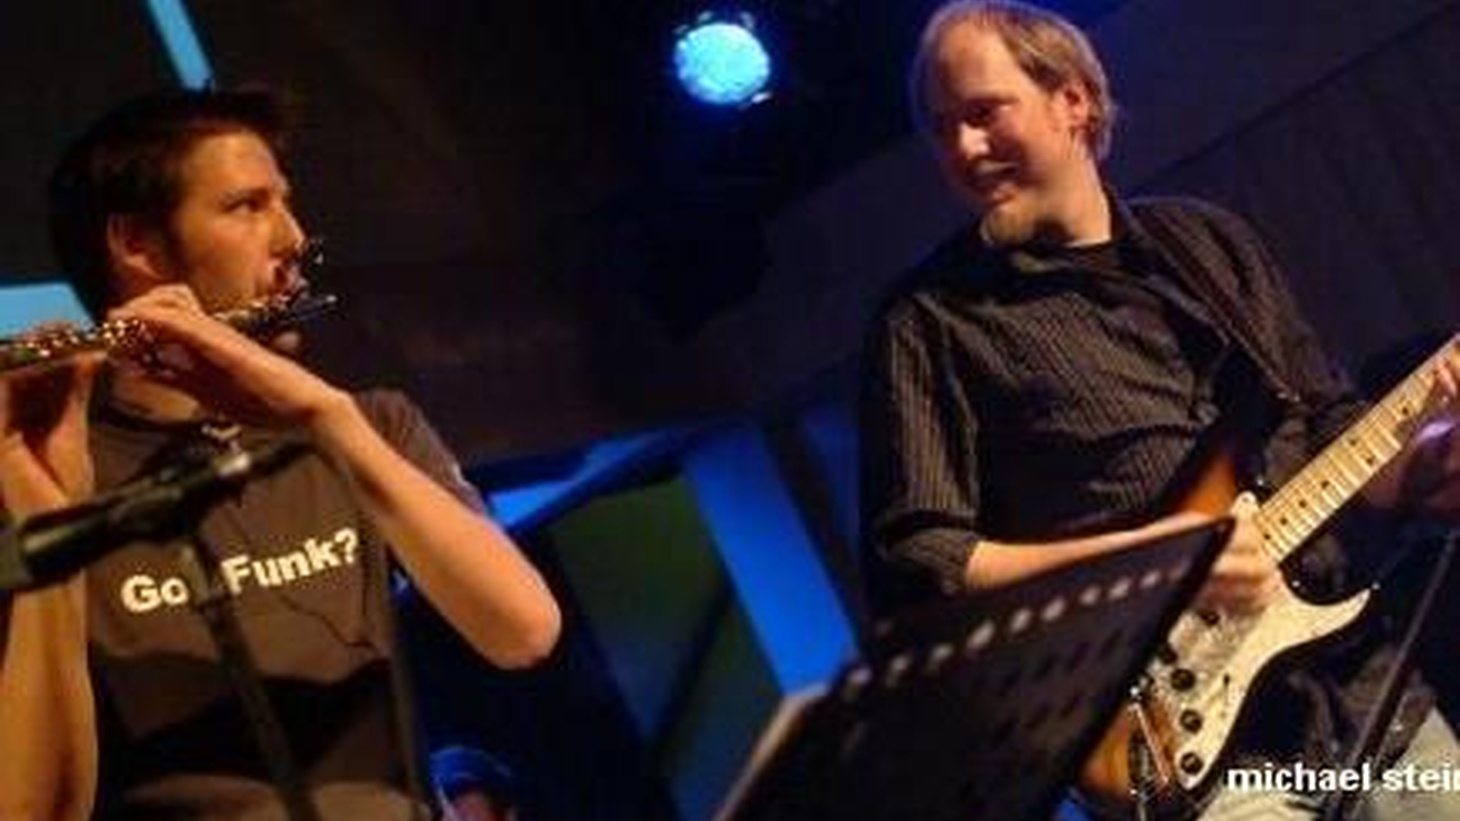 ...from Soul Protection.   Viennese producers and musicians Axel Hirn and Bjorn Klein, co-founders of Wet Cookies, started out with a shared affection for jazz, dub and electronic music.